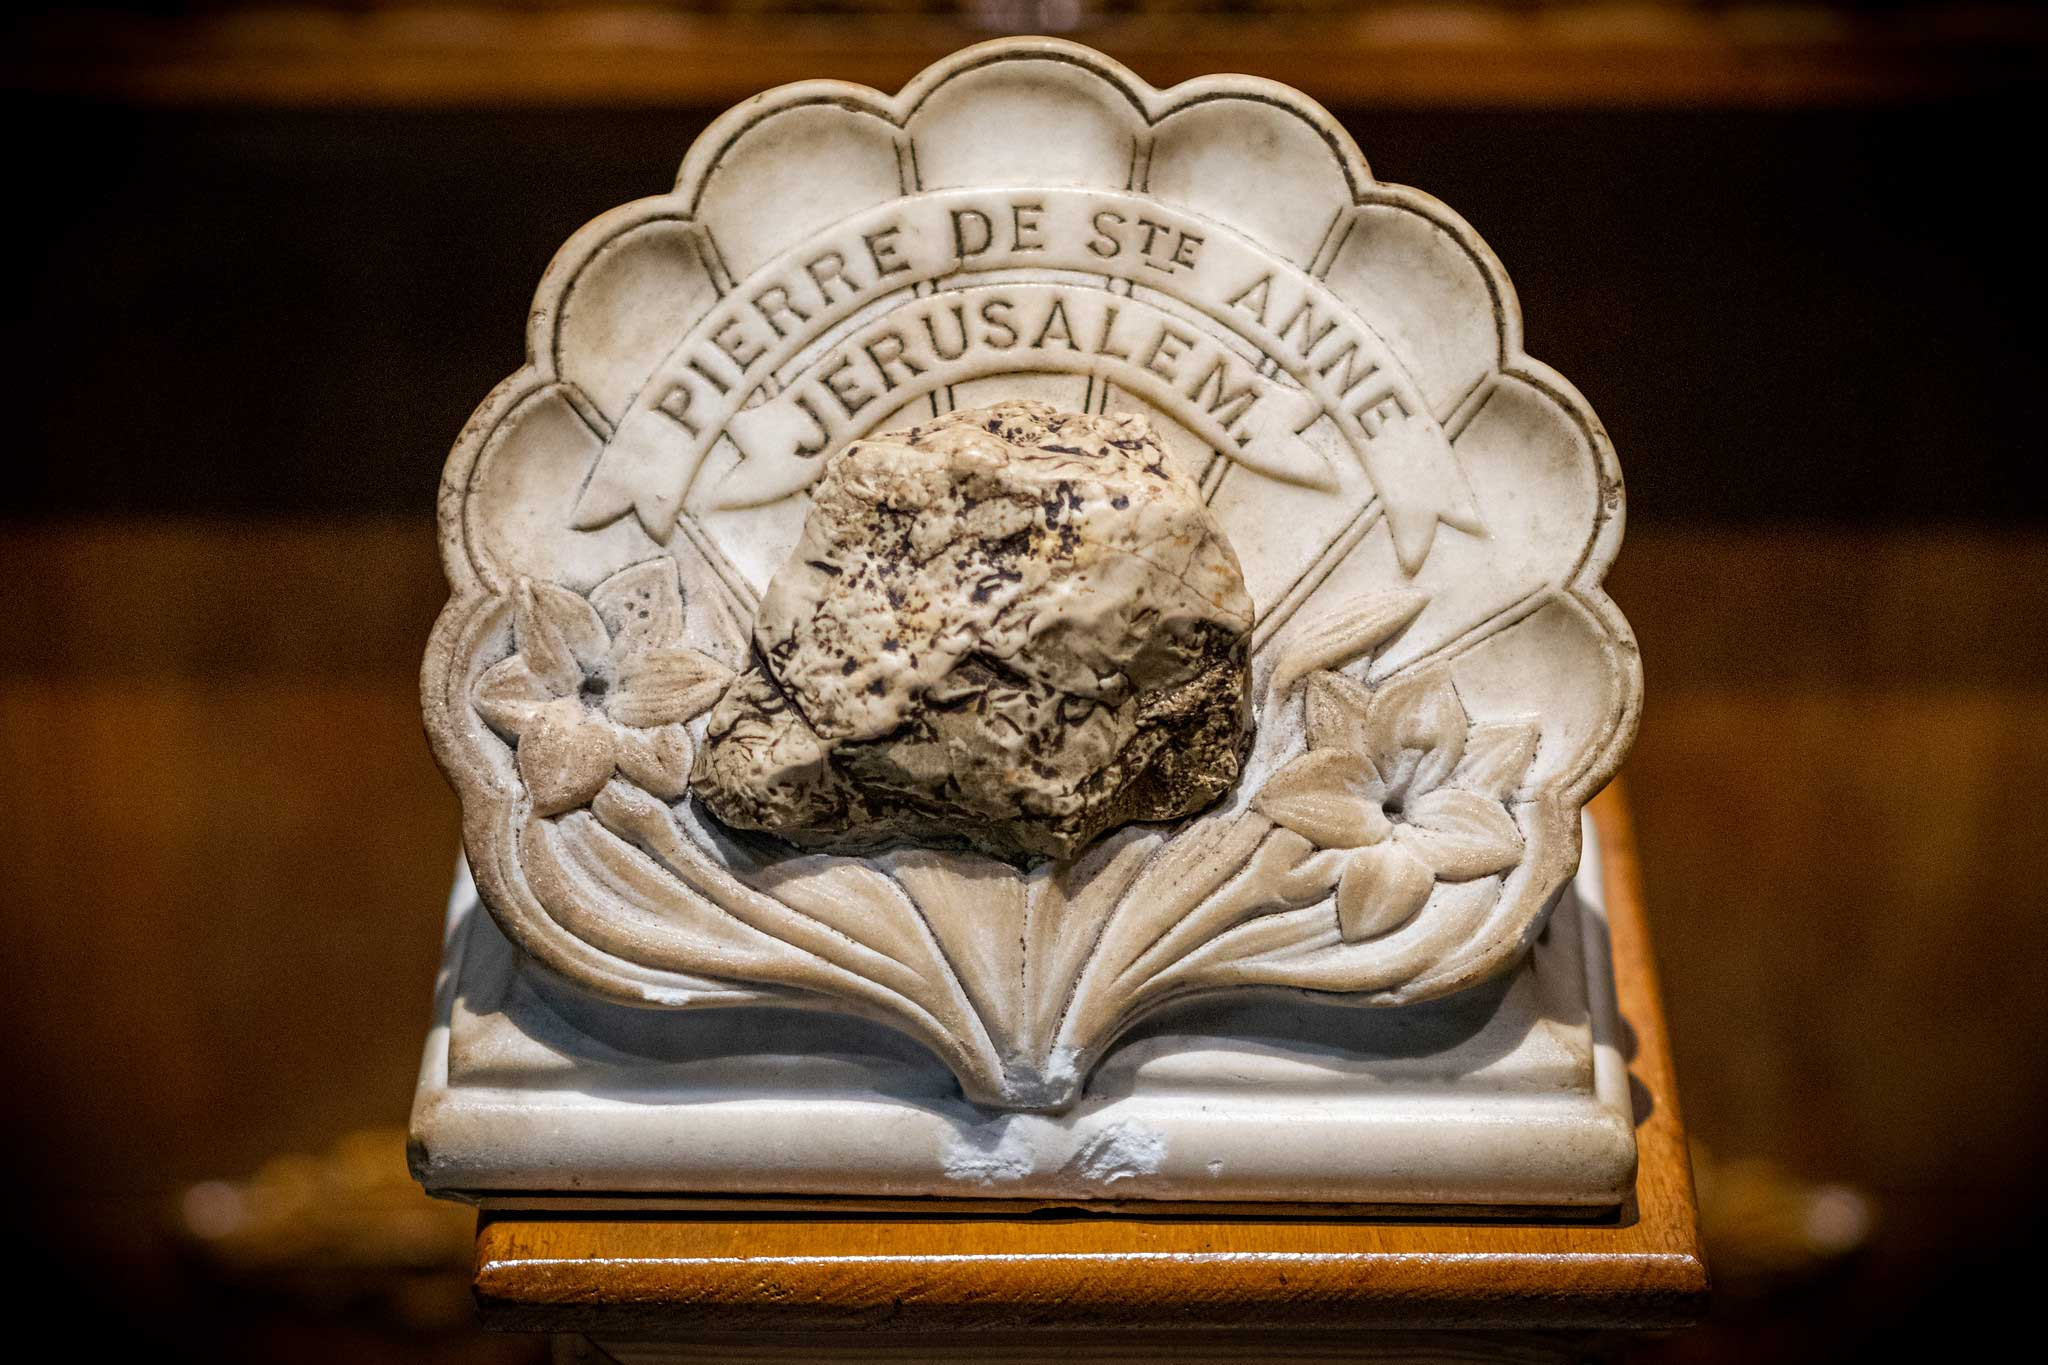 Piece of stone from St. Anne's Church in Jerusalem at St. Annes Shrine Fall River, MA